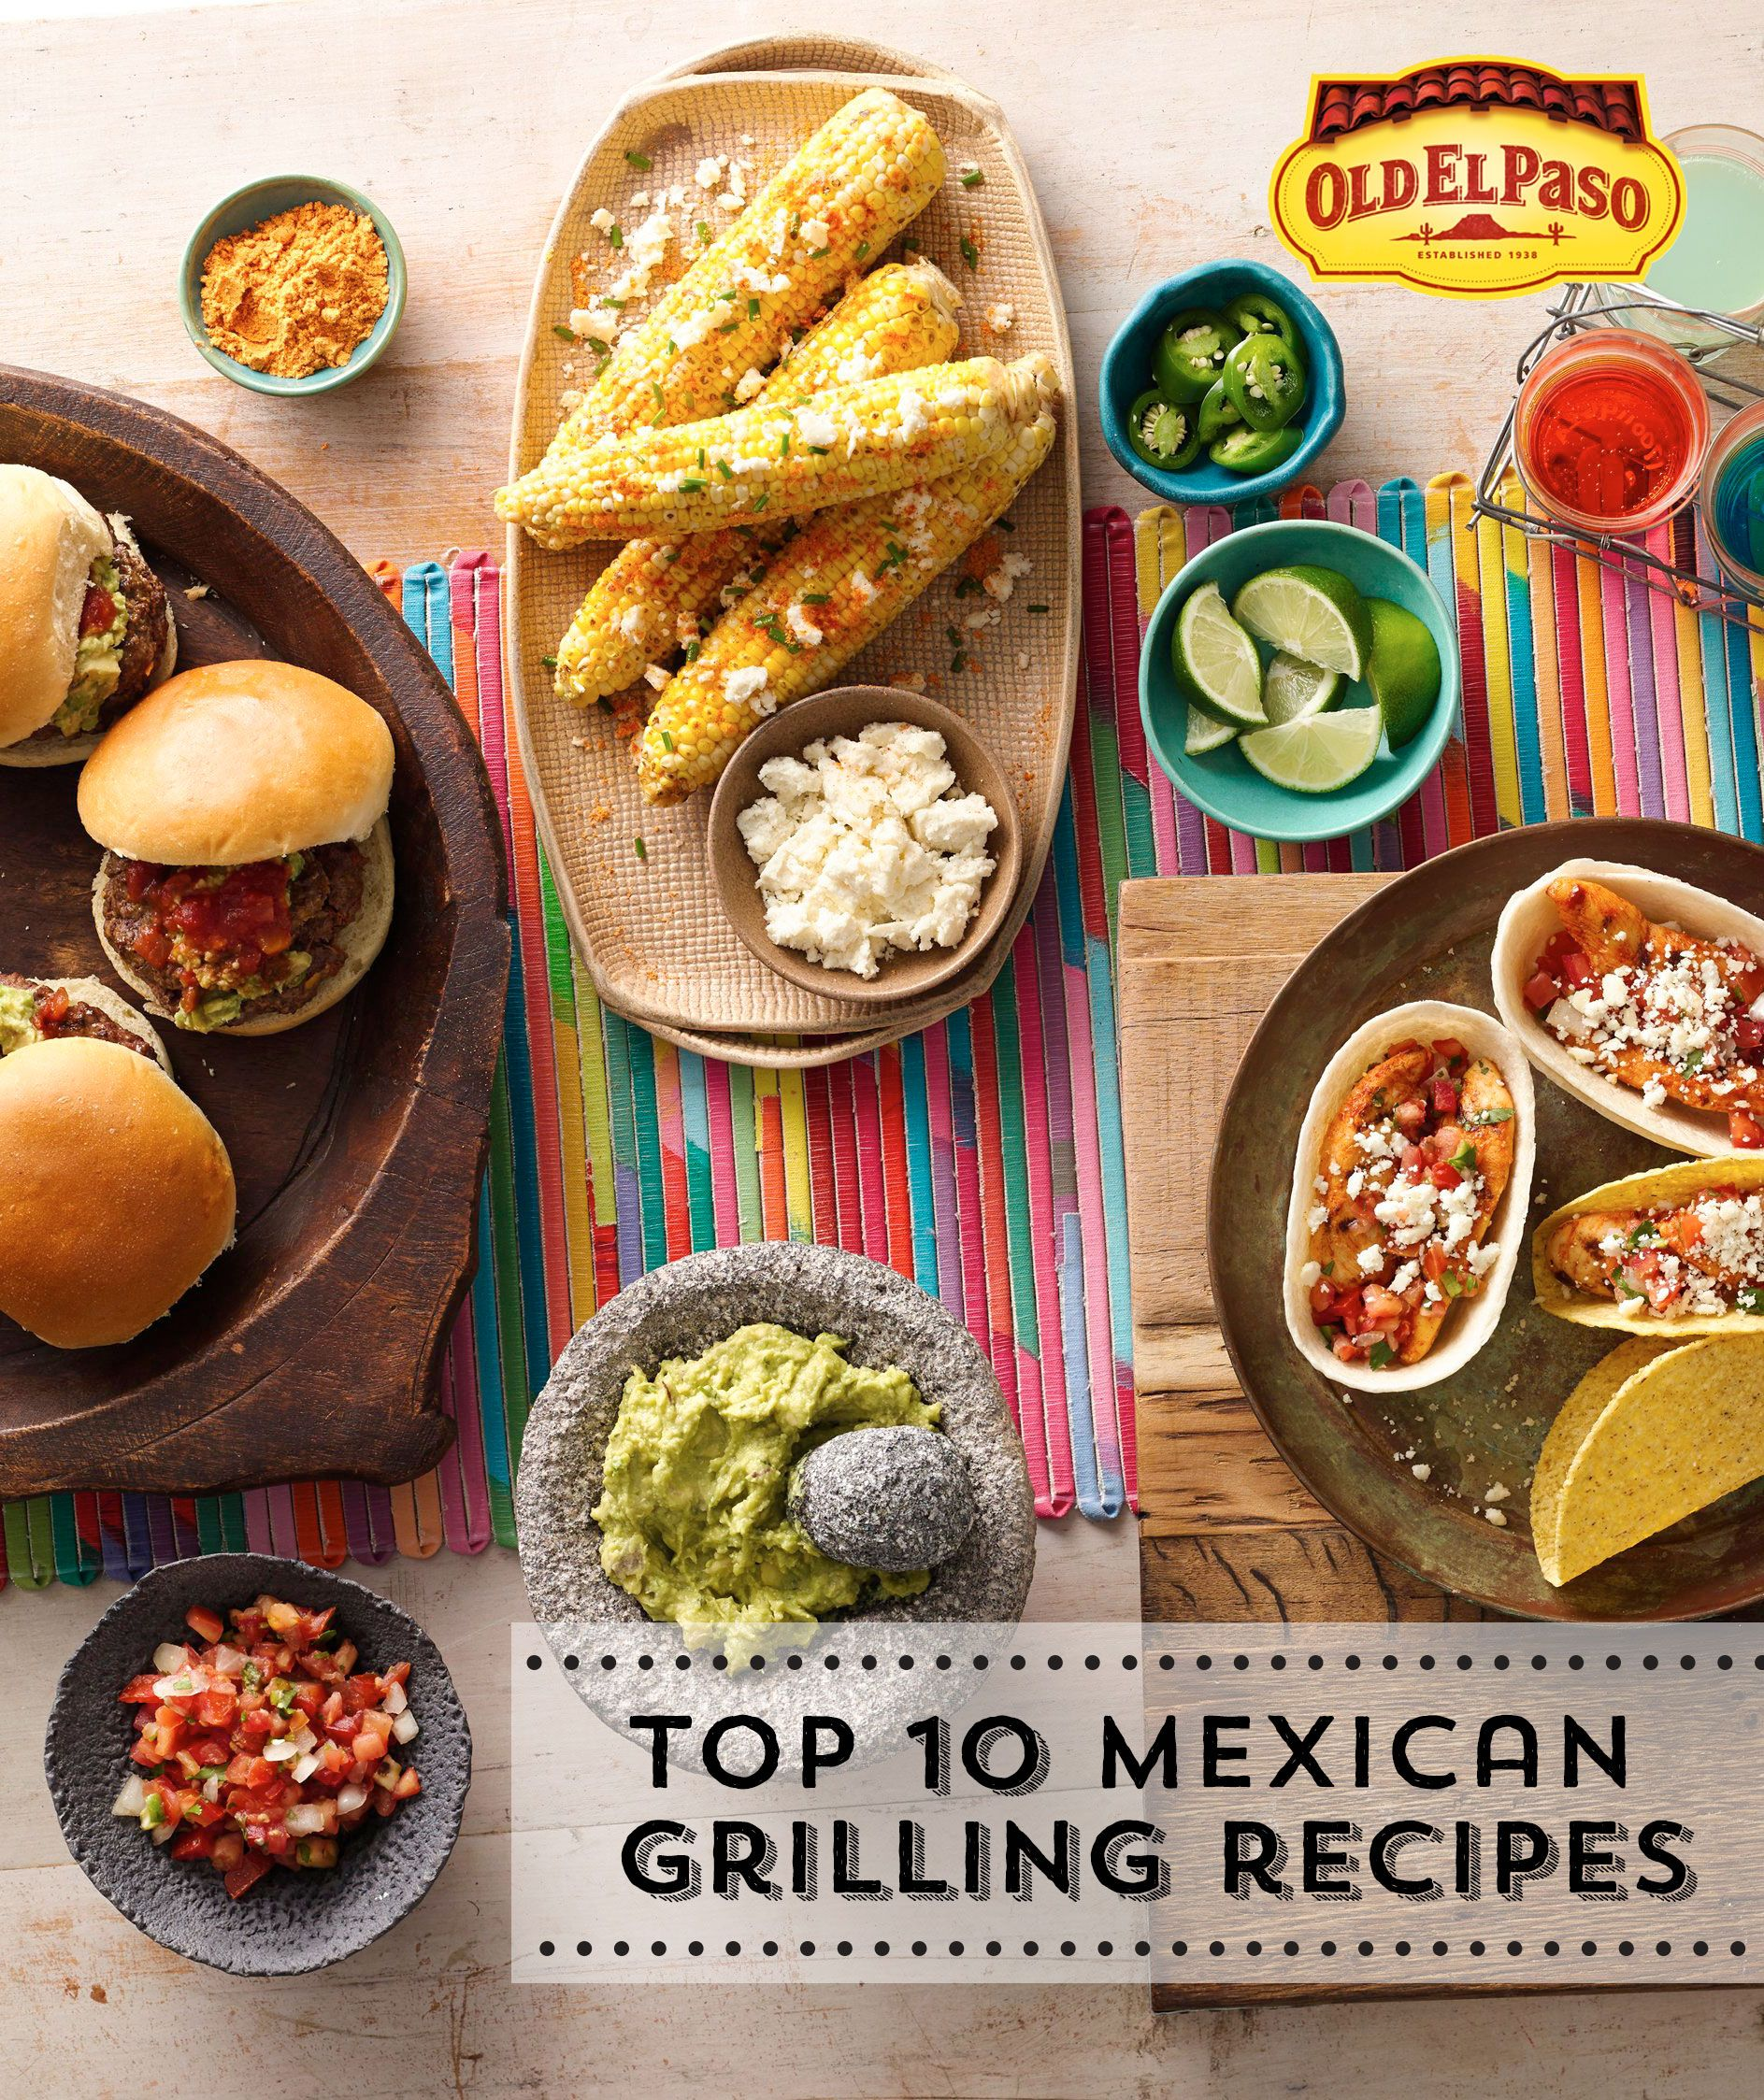 Top 10 Mexican Dinner Recipes: Top 10 Mexican Grilling Ideas From Old El Paso To Spice Up